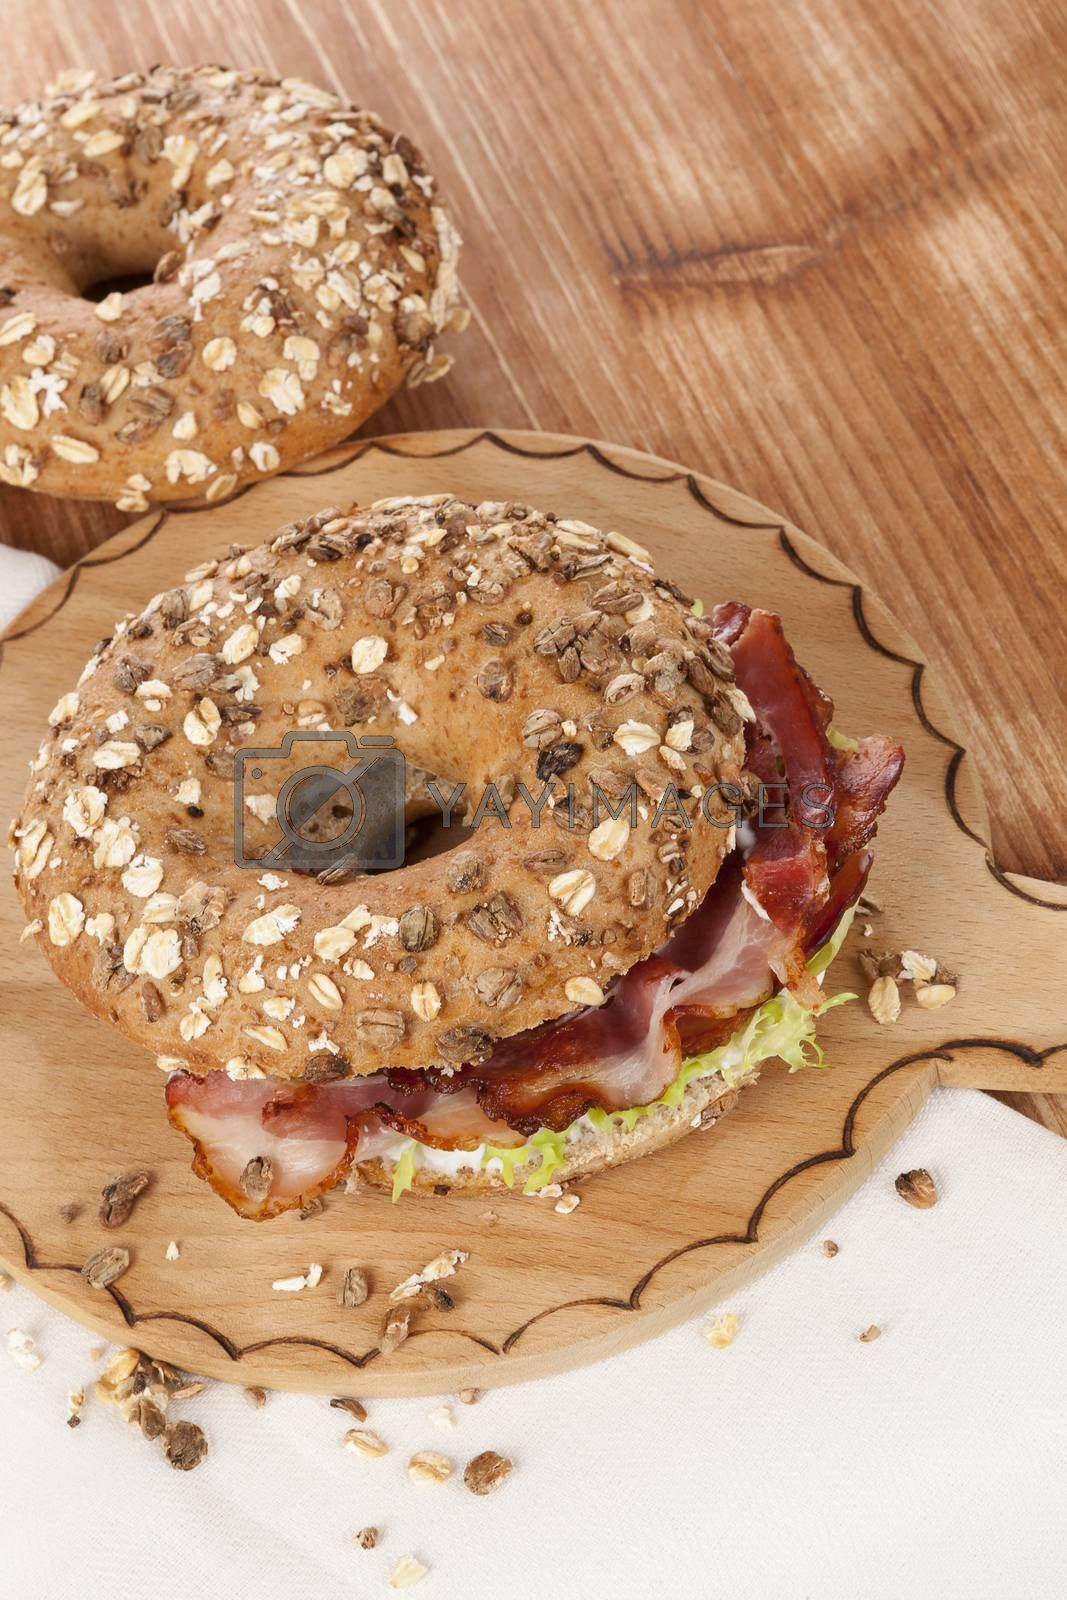 Delicious bagel eating. Whole grain bagel with bacon on wooden background.